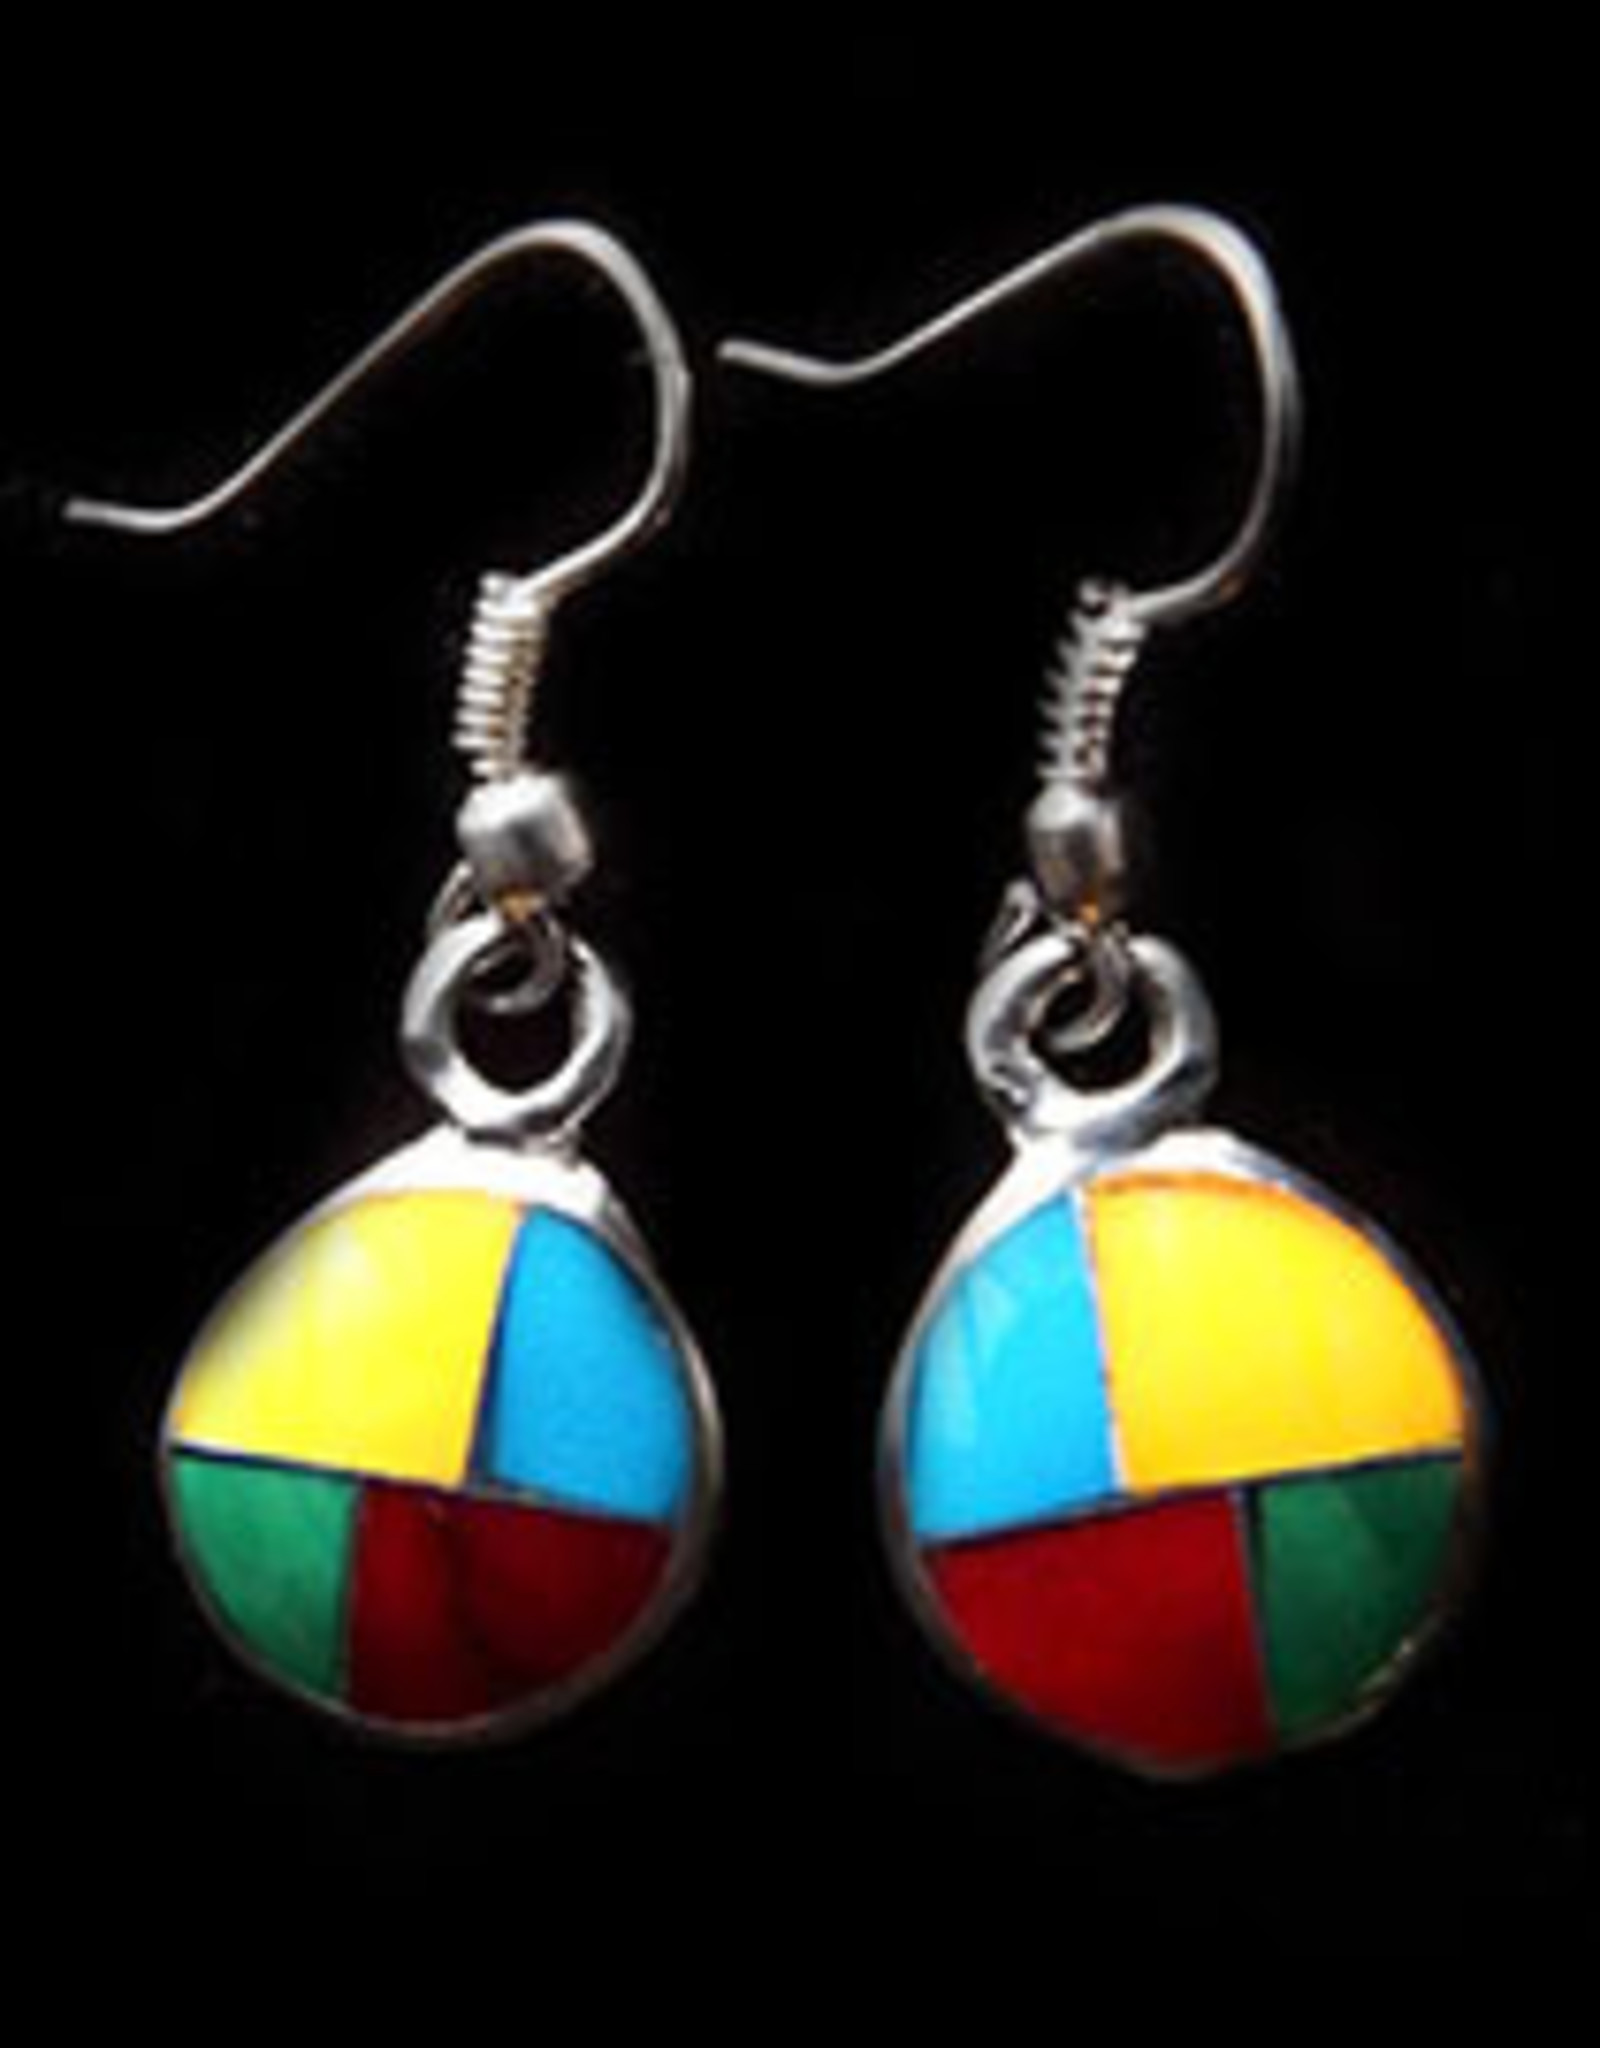 Inlaid Circle Drop Earrings, Mexico